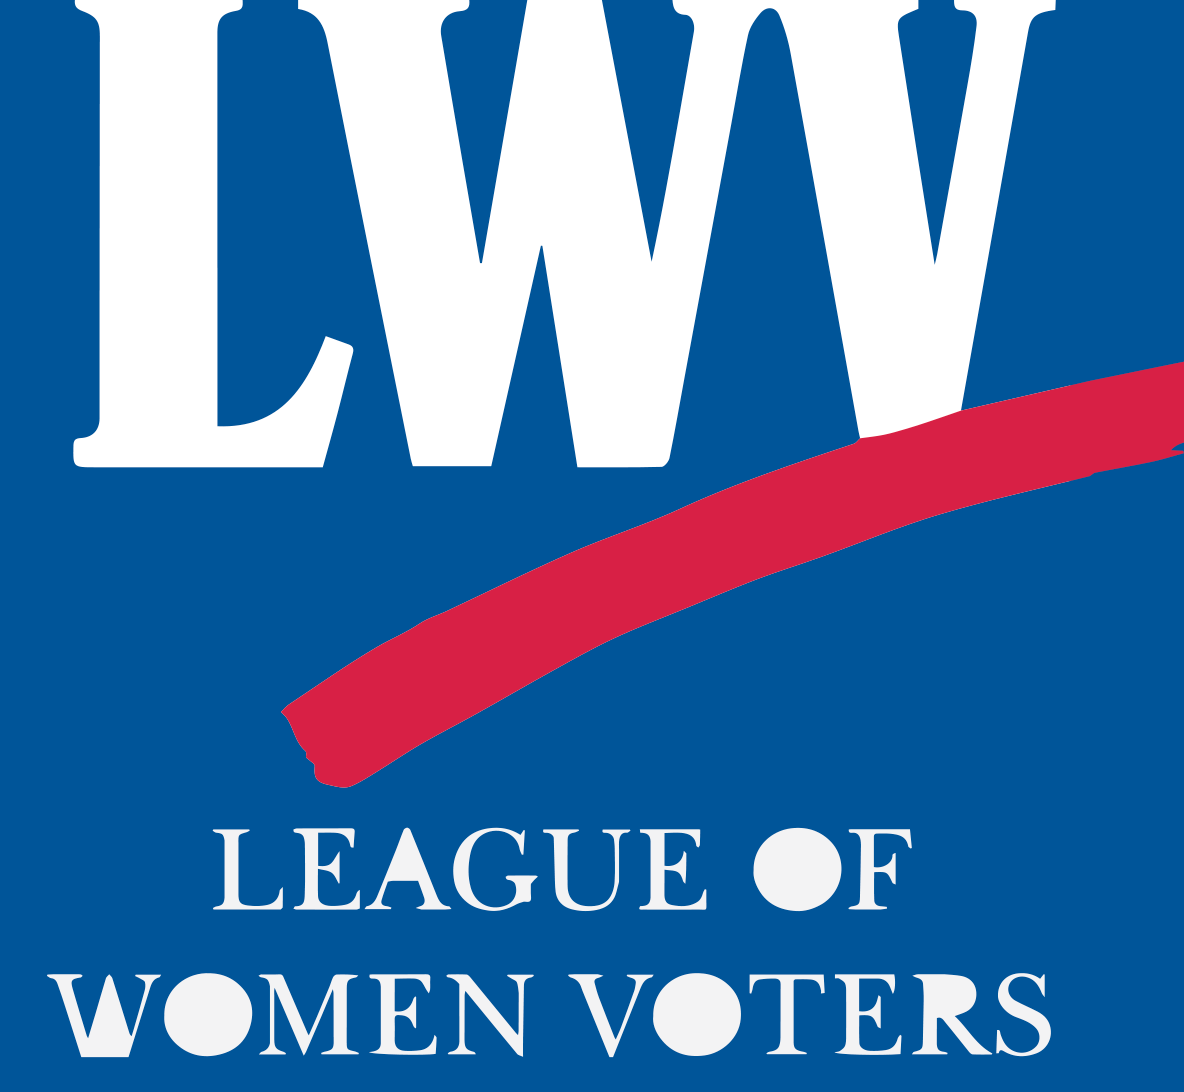 League of Women Voters Tennessee Valley